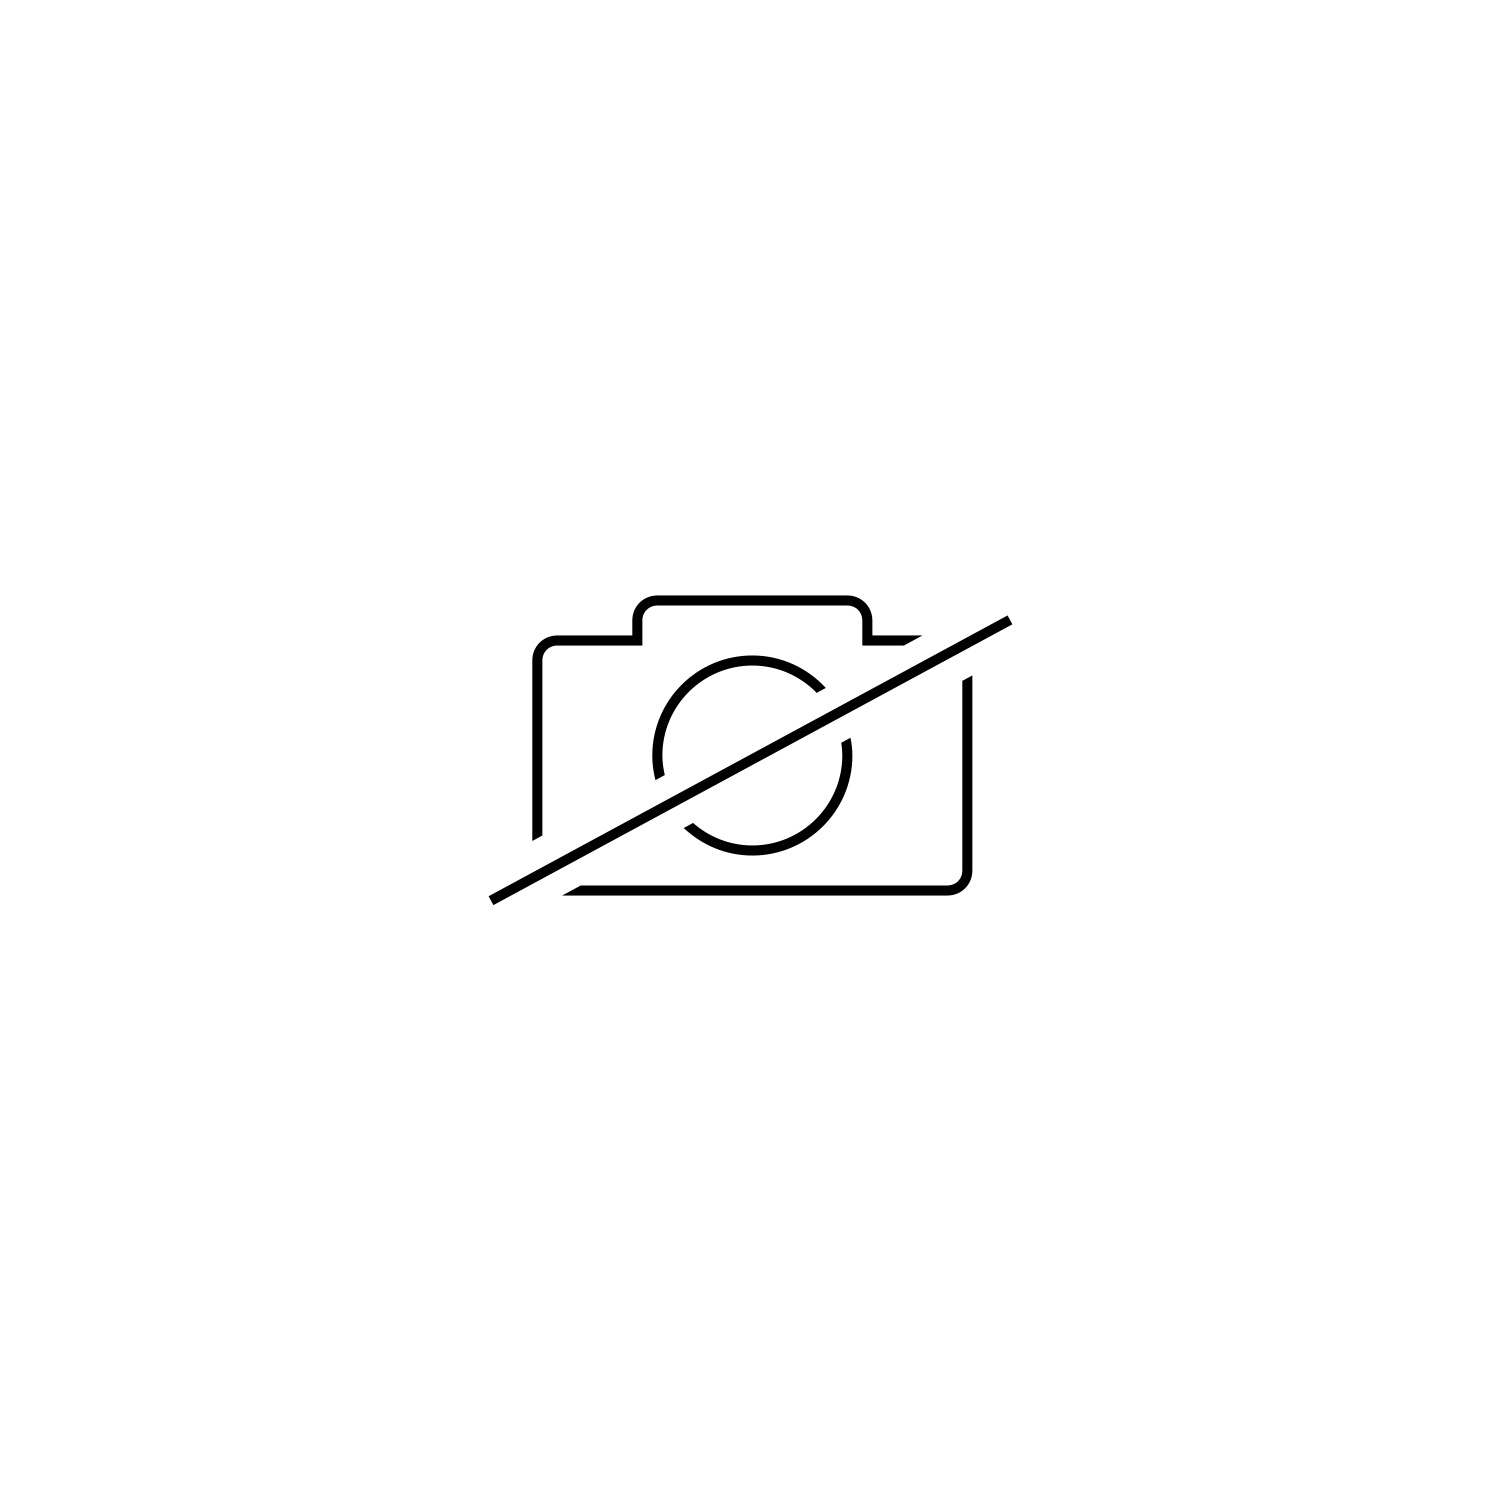 quattro Hoodie, Womens, Light grey, L